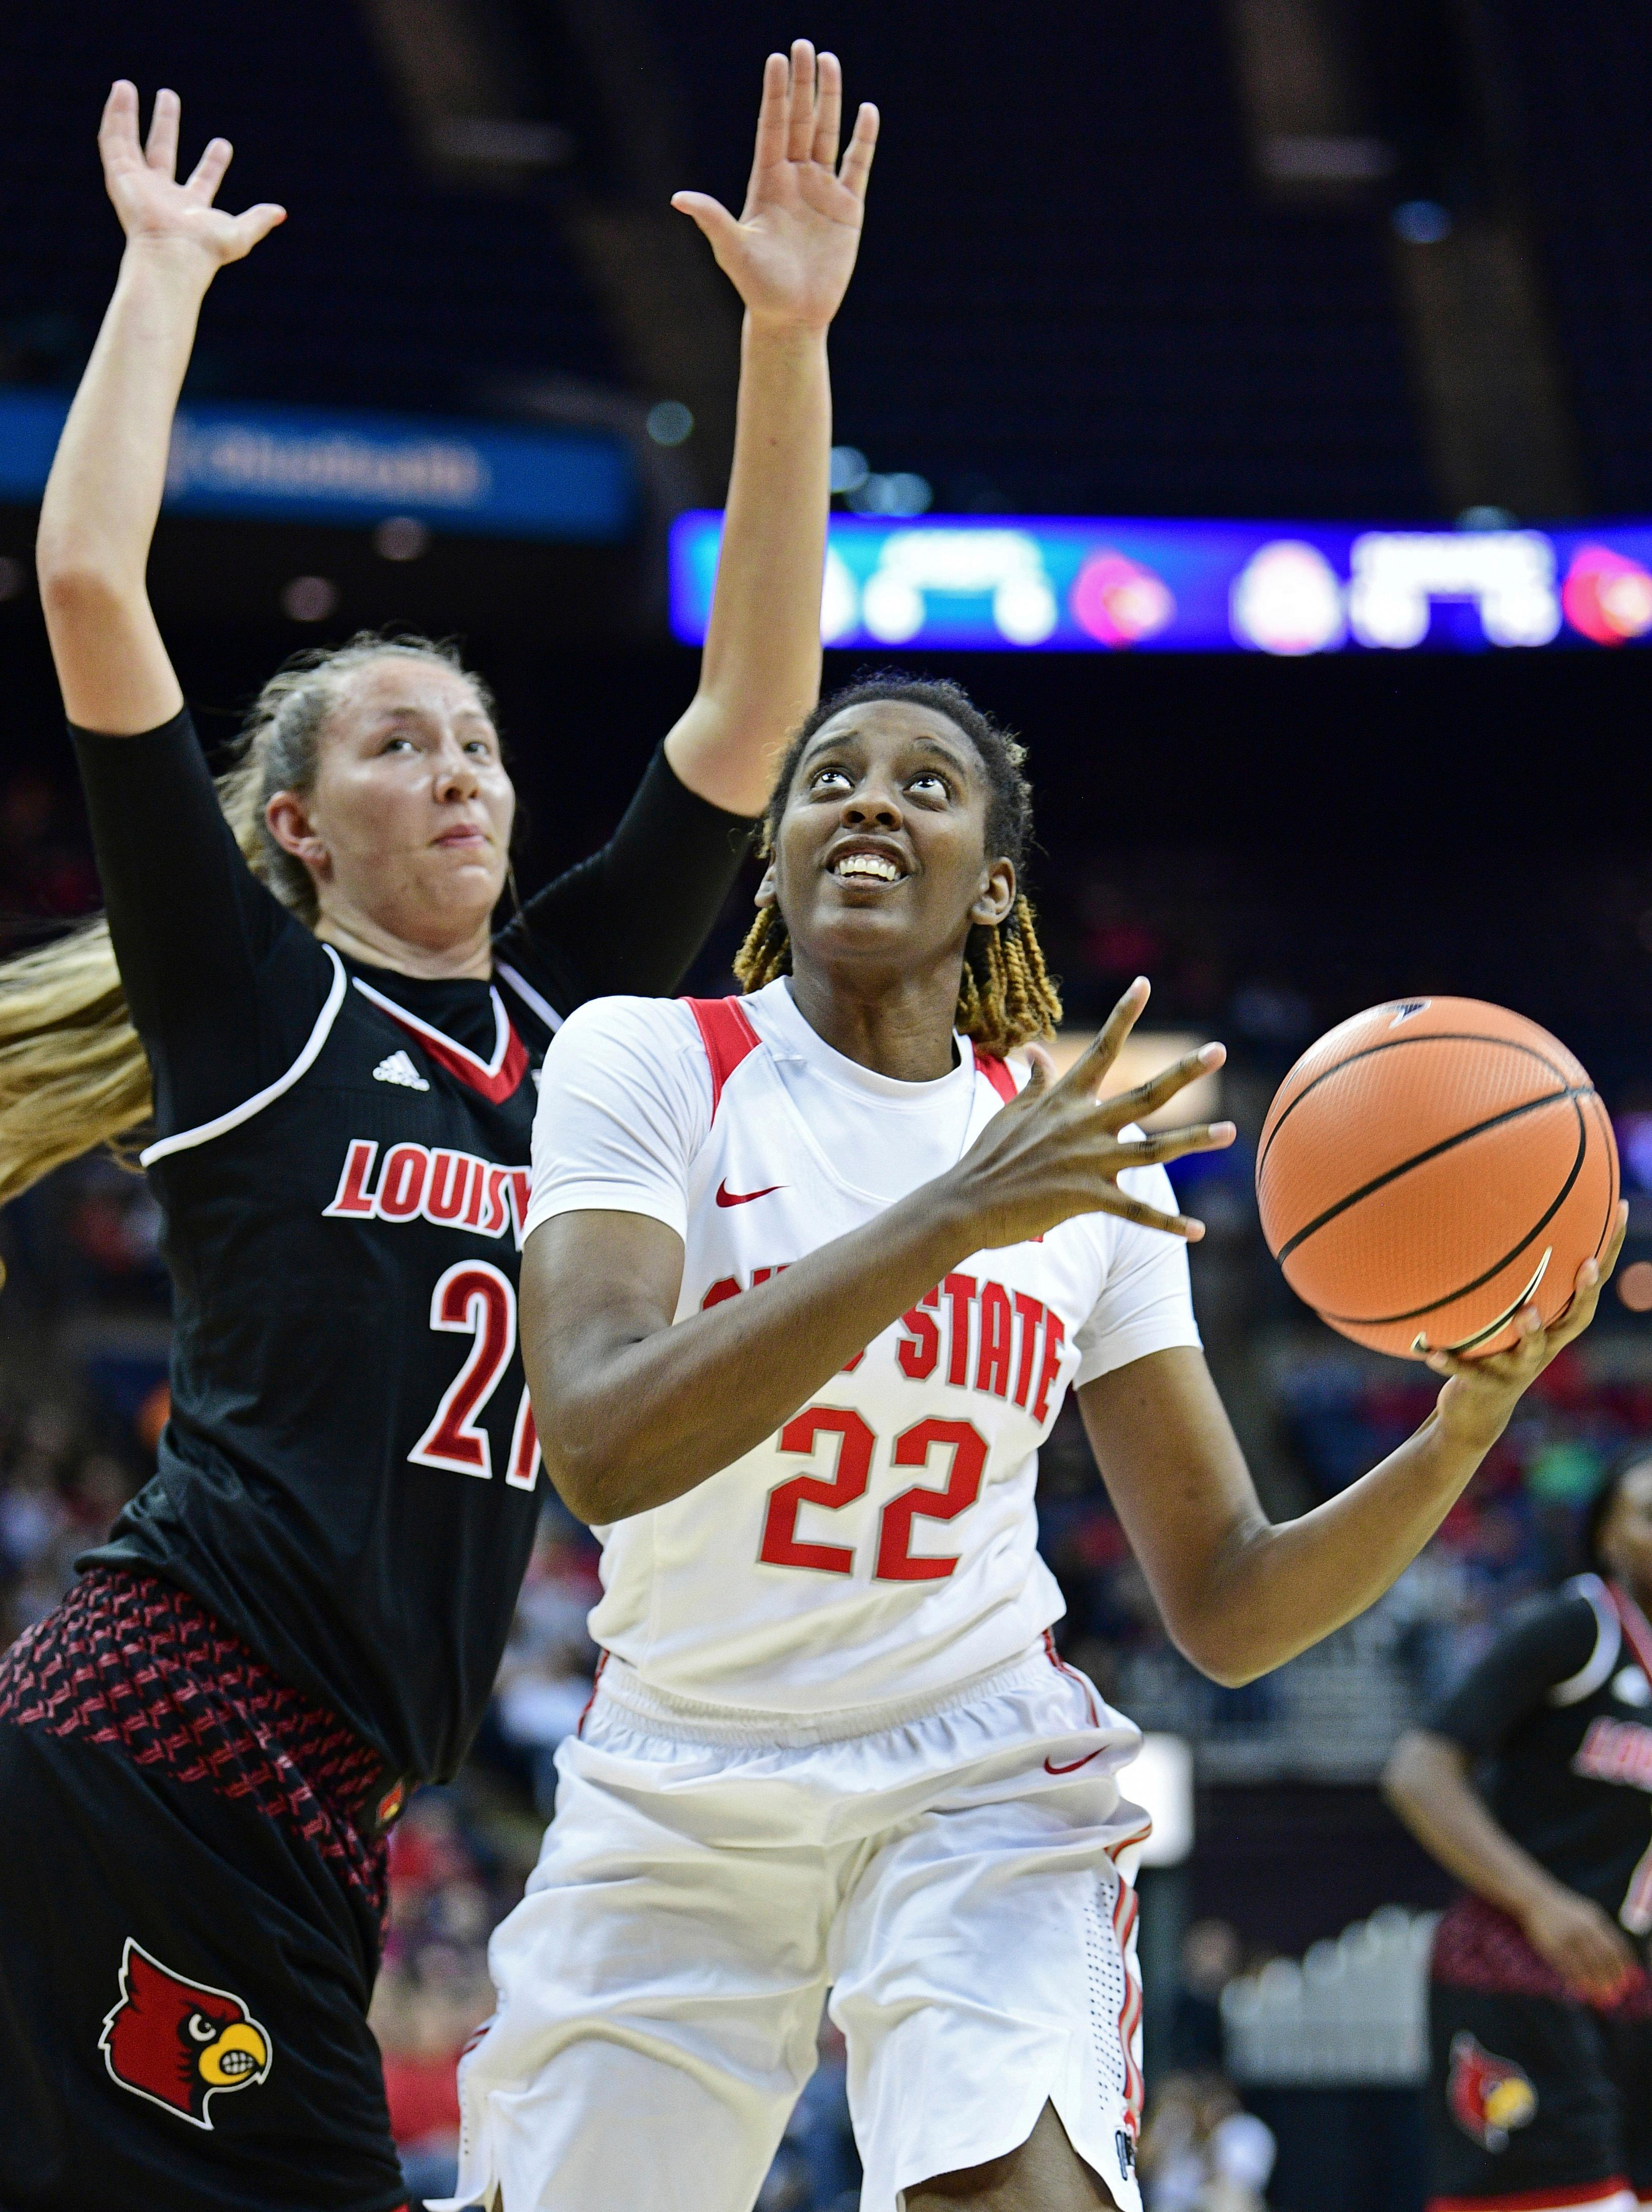 Ohio State's Alexa Hart (22) shoots around Louisville's Kylee Shook during the second quarter of an NCAA college basketball game, Sunday, Nov. 12, 2017, in Columbus, Ohio. (AP Photo/David Dermer)